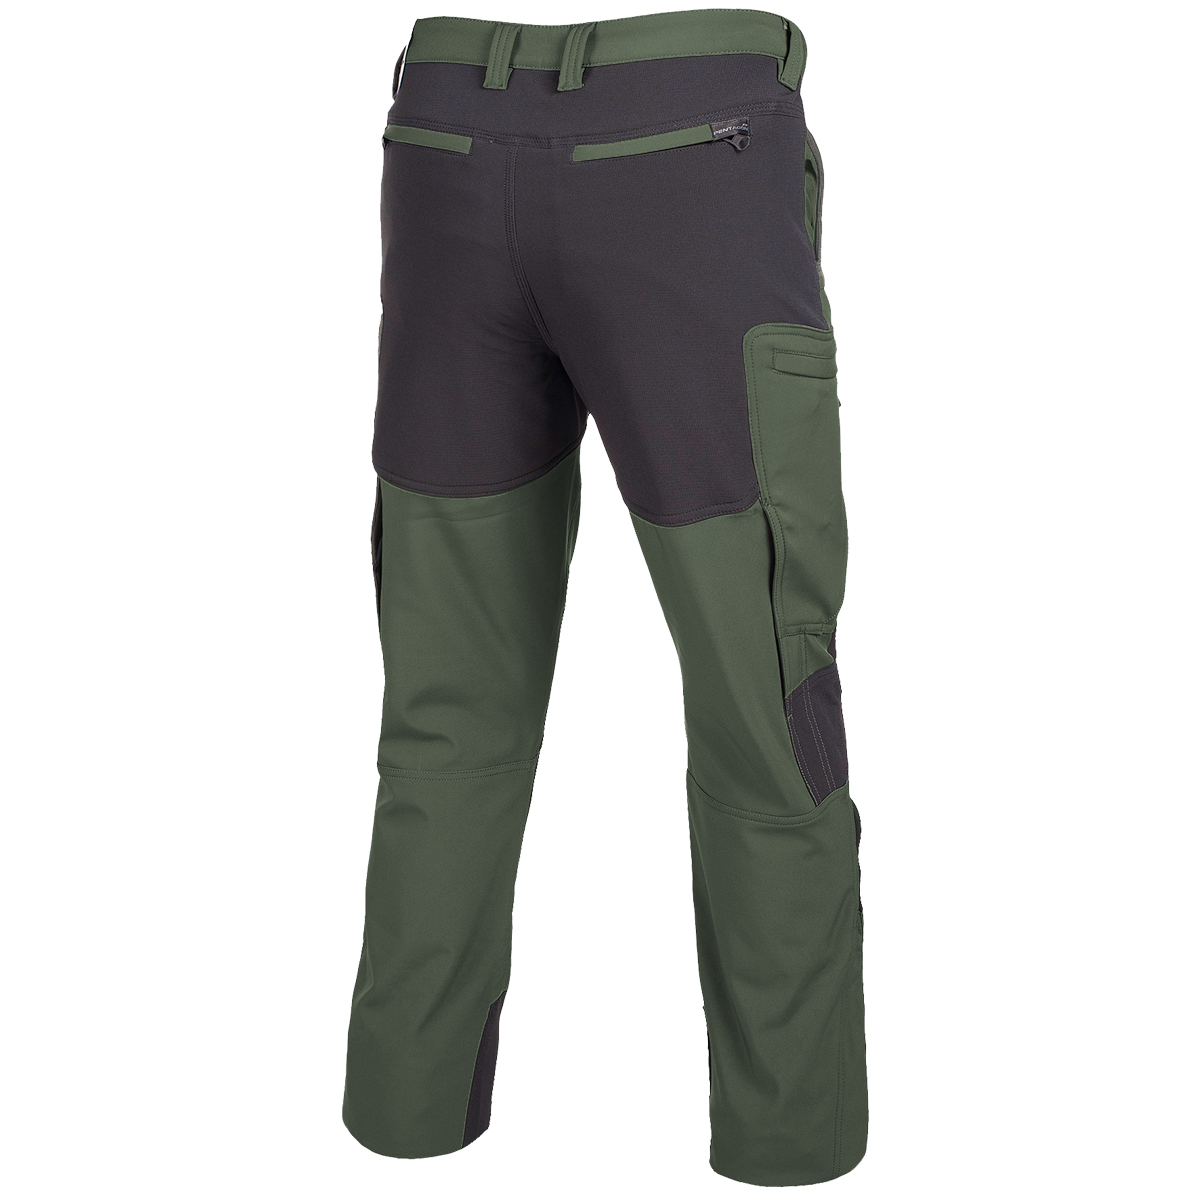 k05015-04-pentagon-hydra-soft-shell-pants-camo-green_2z